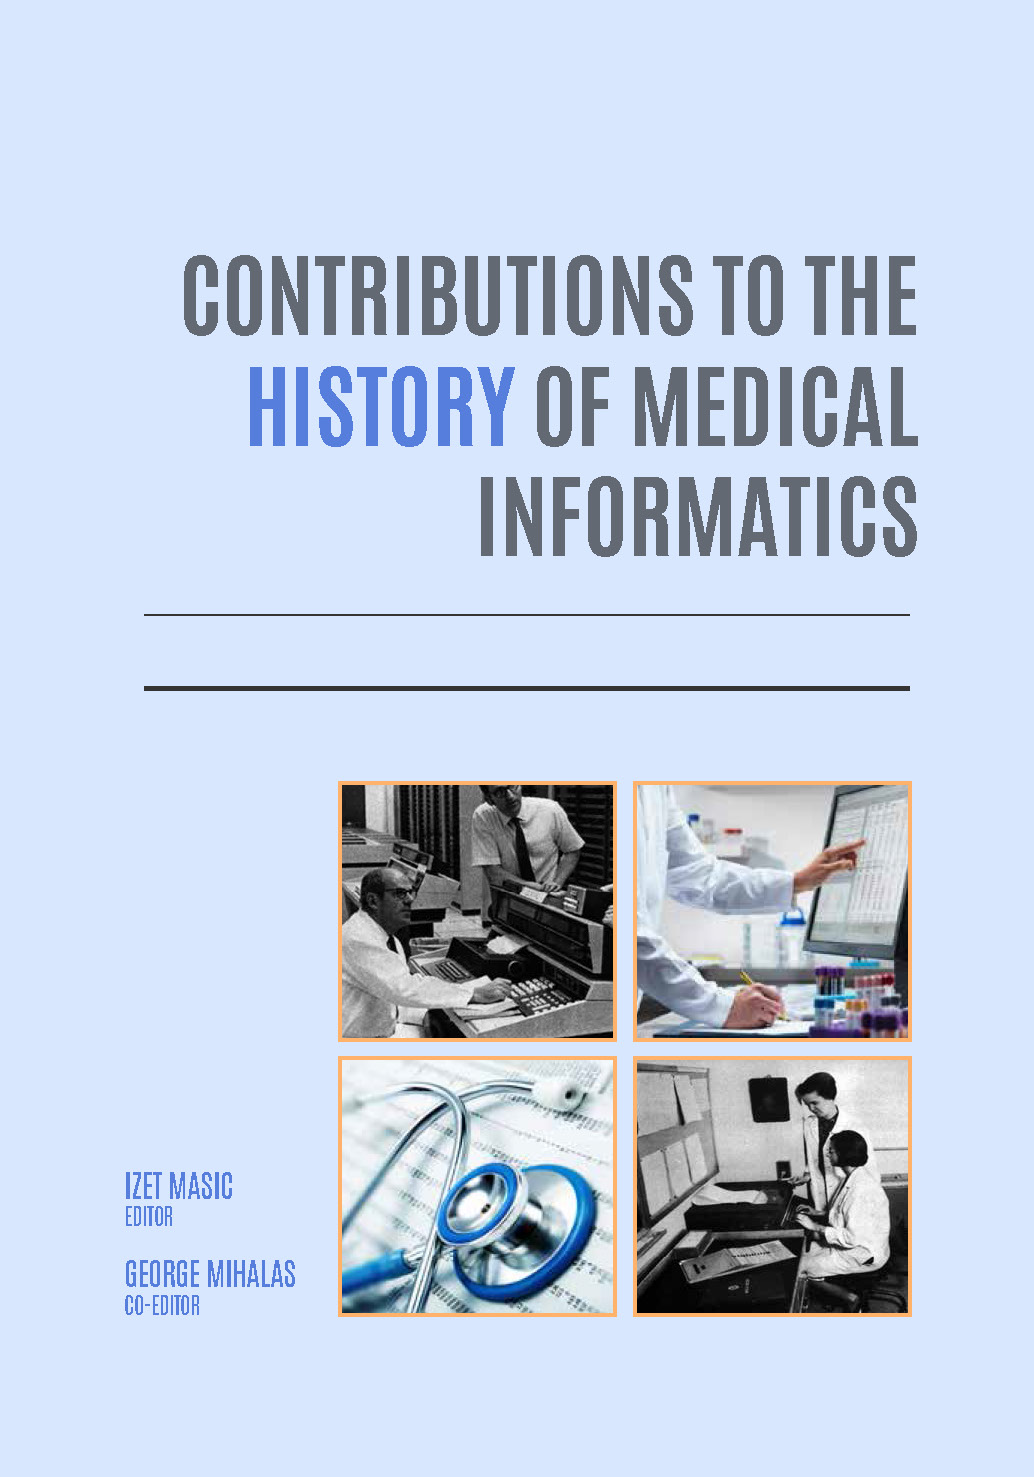 Contributions to the History of Medical Informatics